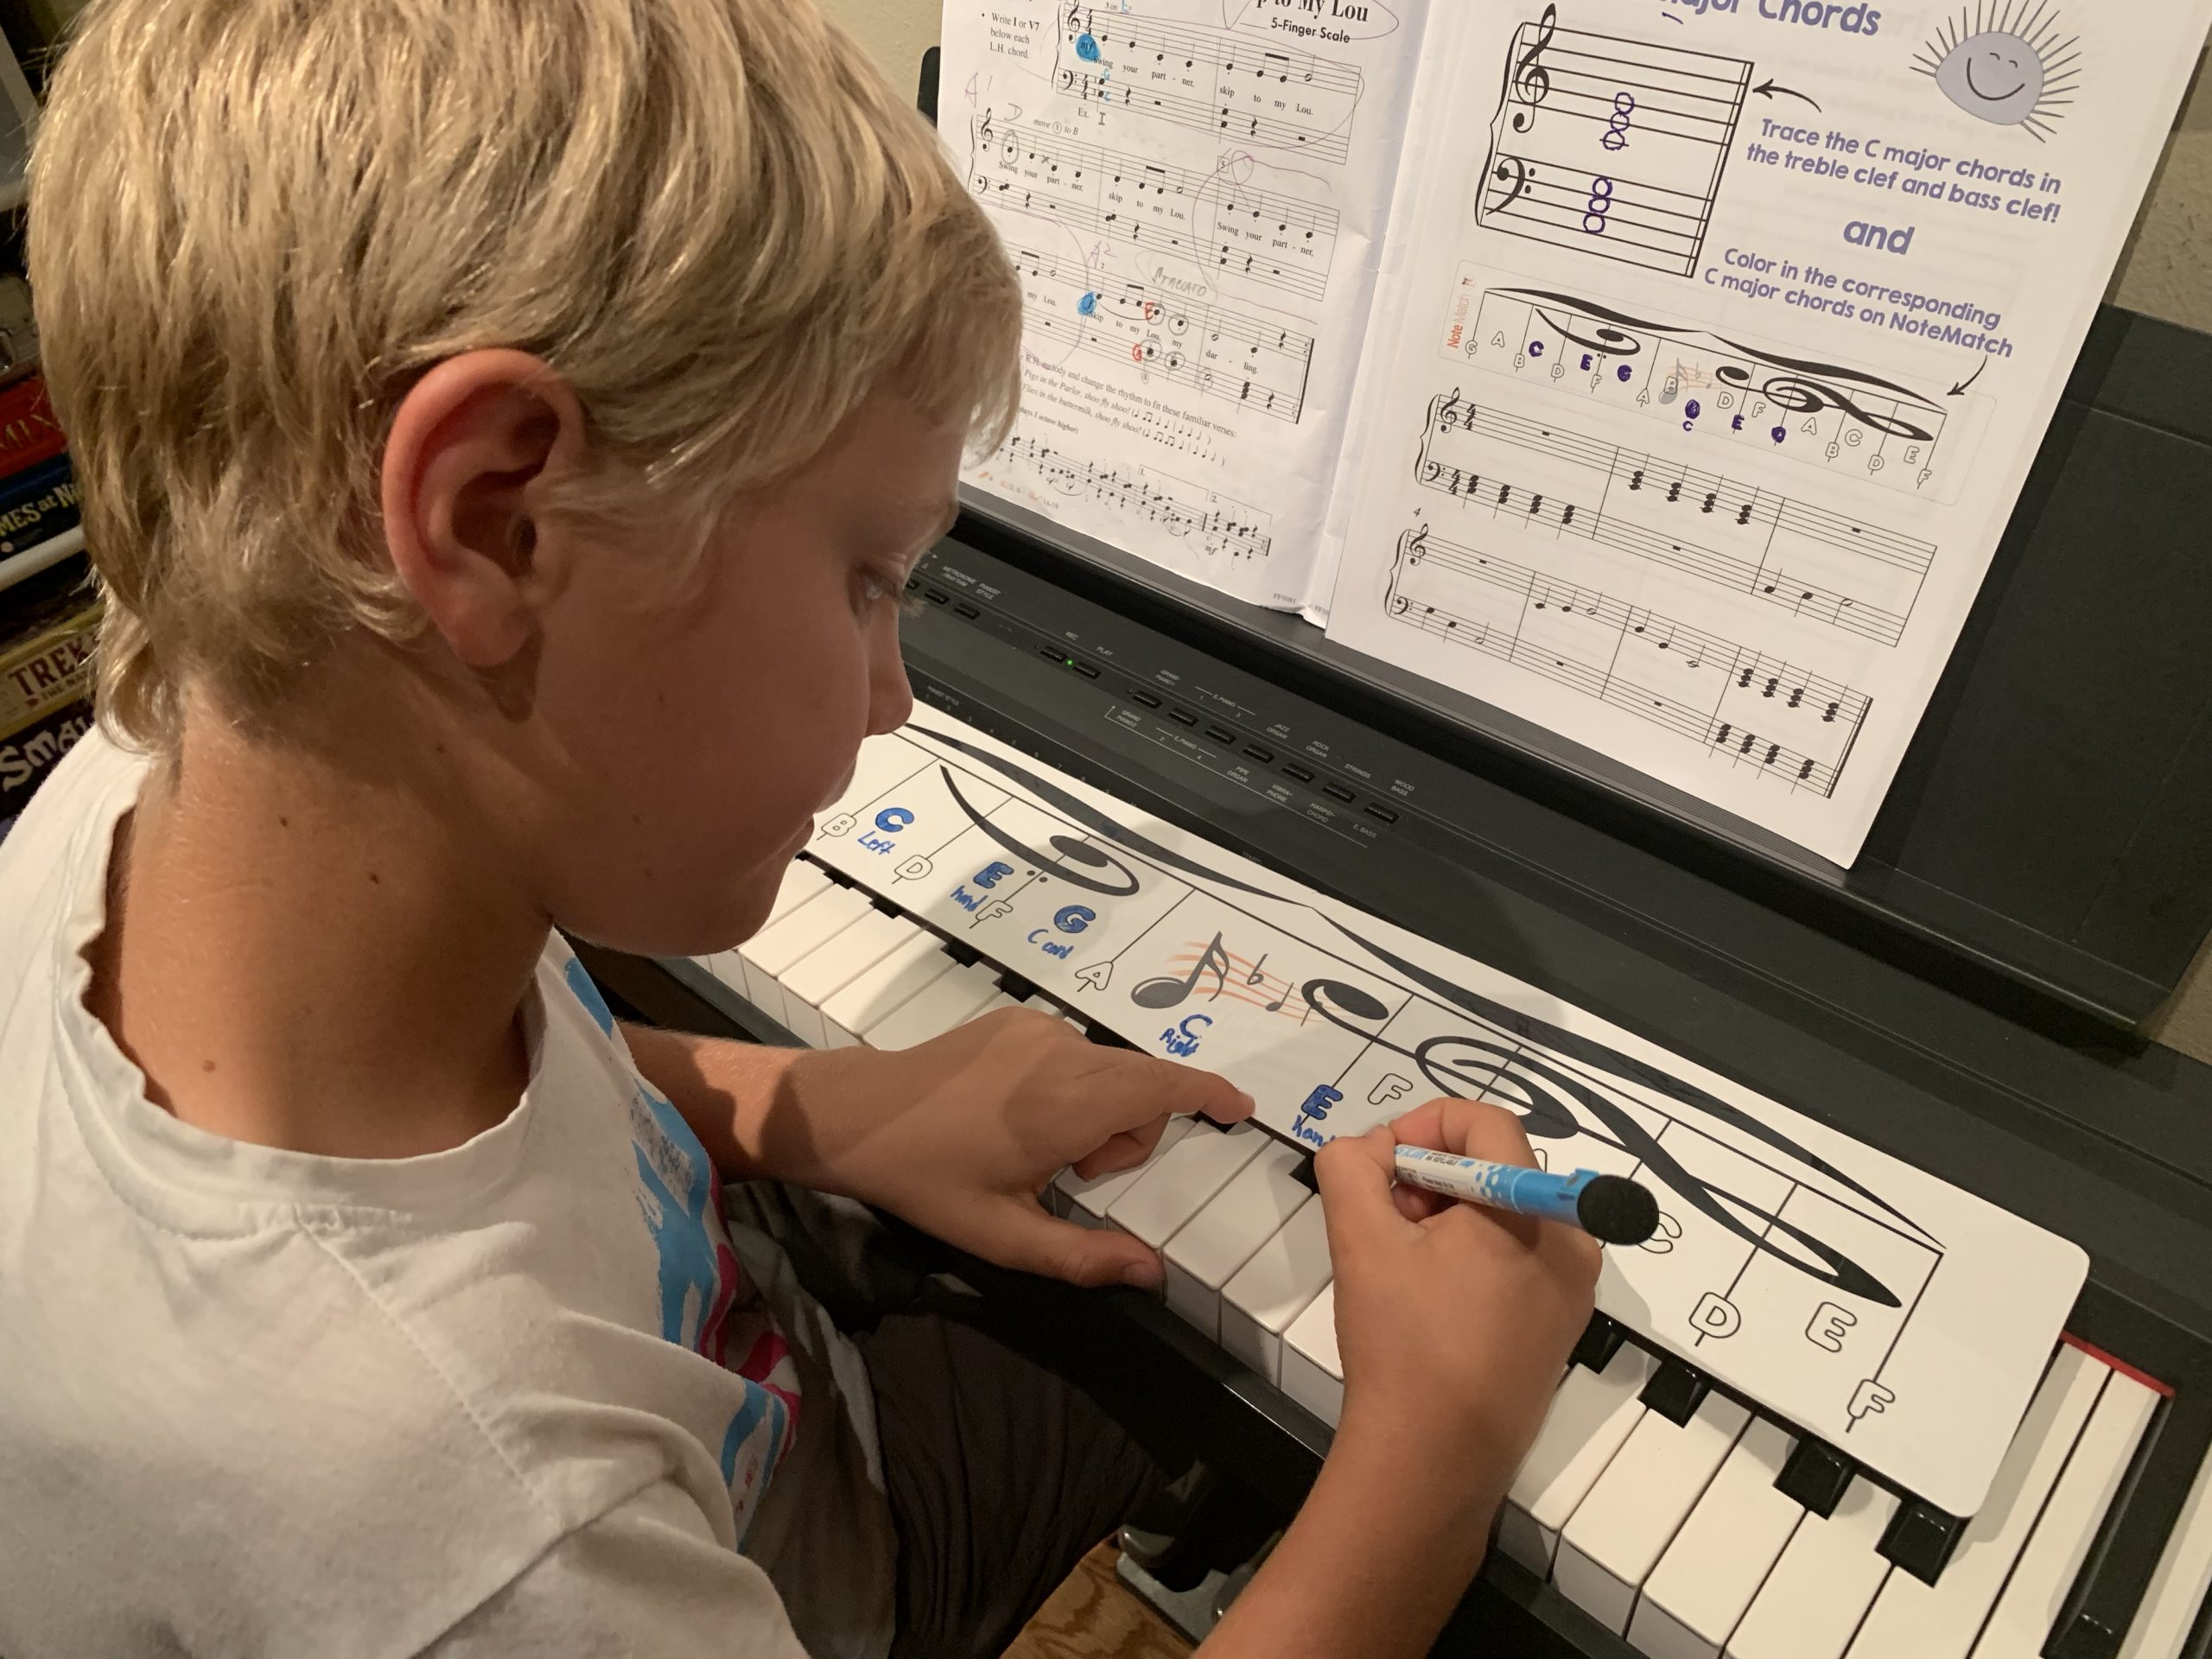 Young boy coloring in piano notes on the life-sized NoteMatch while learning about chords